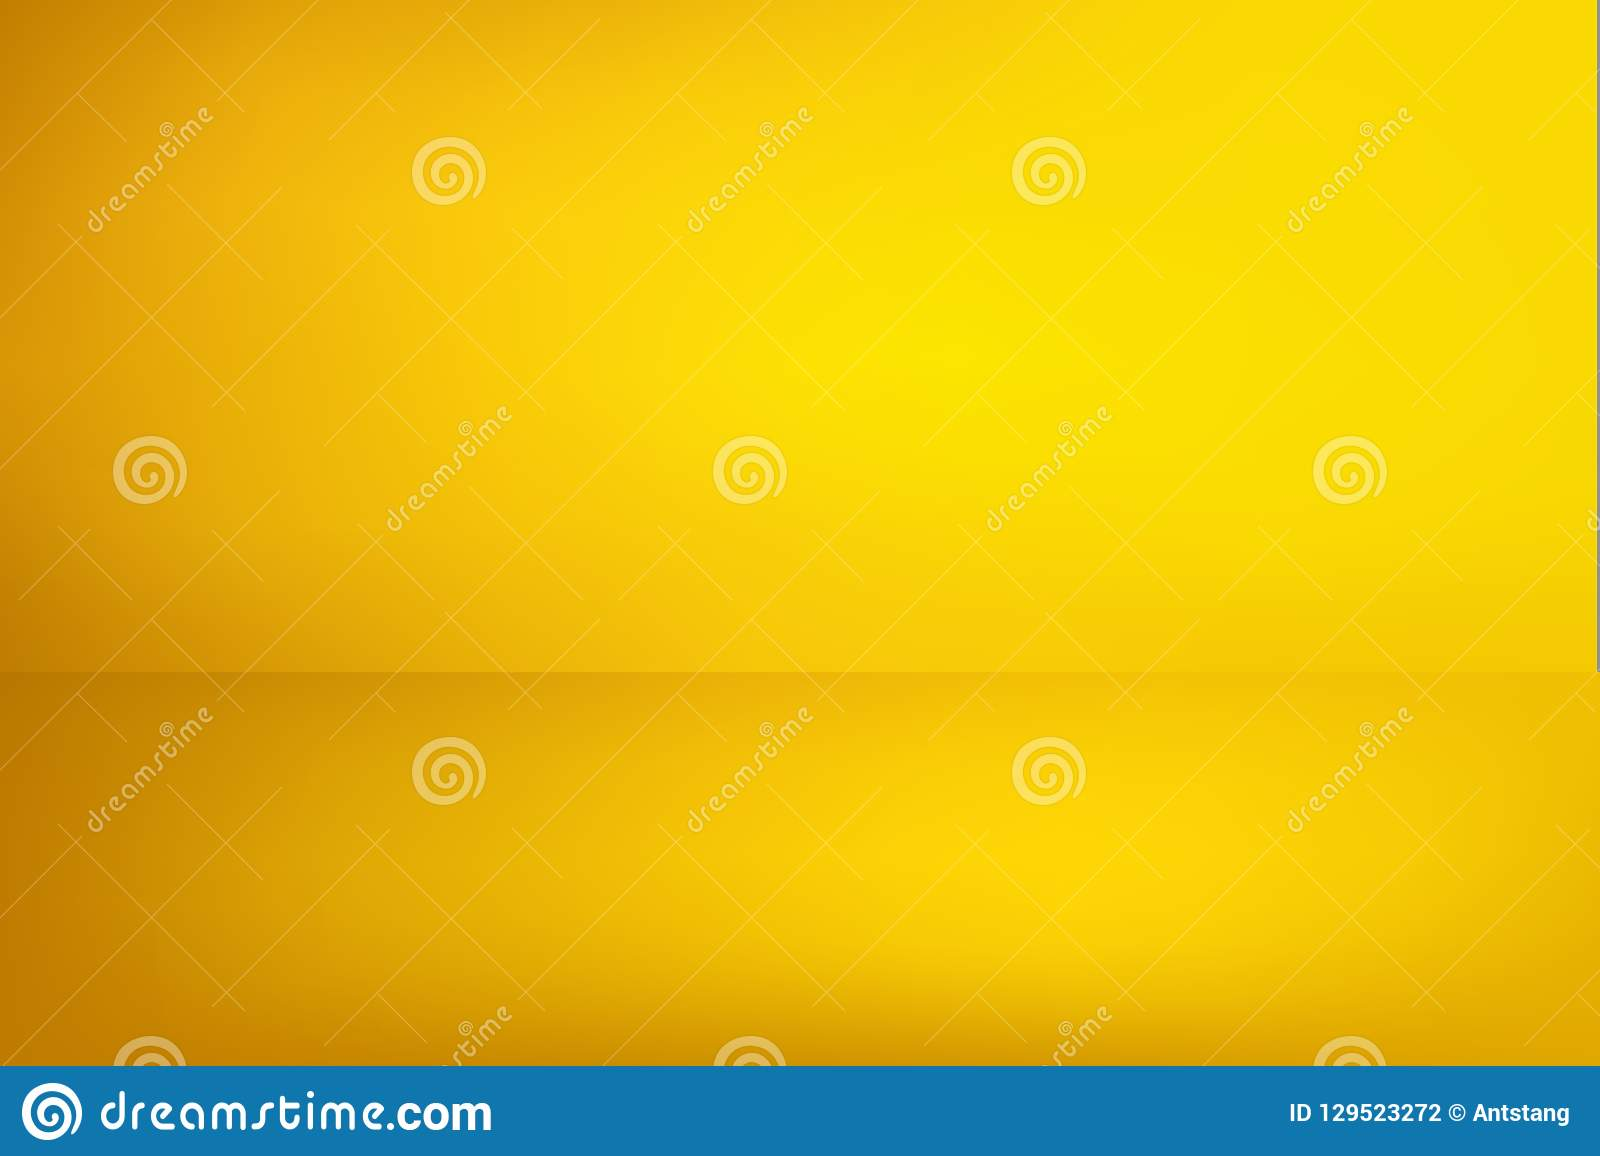 Abstract Bright Yellow Background  Empty Room With Spotlight Effect